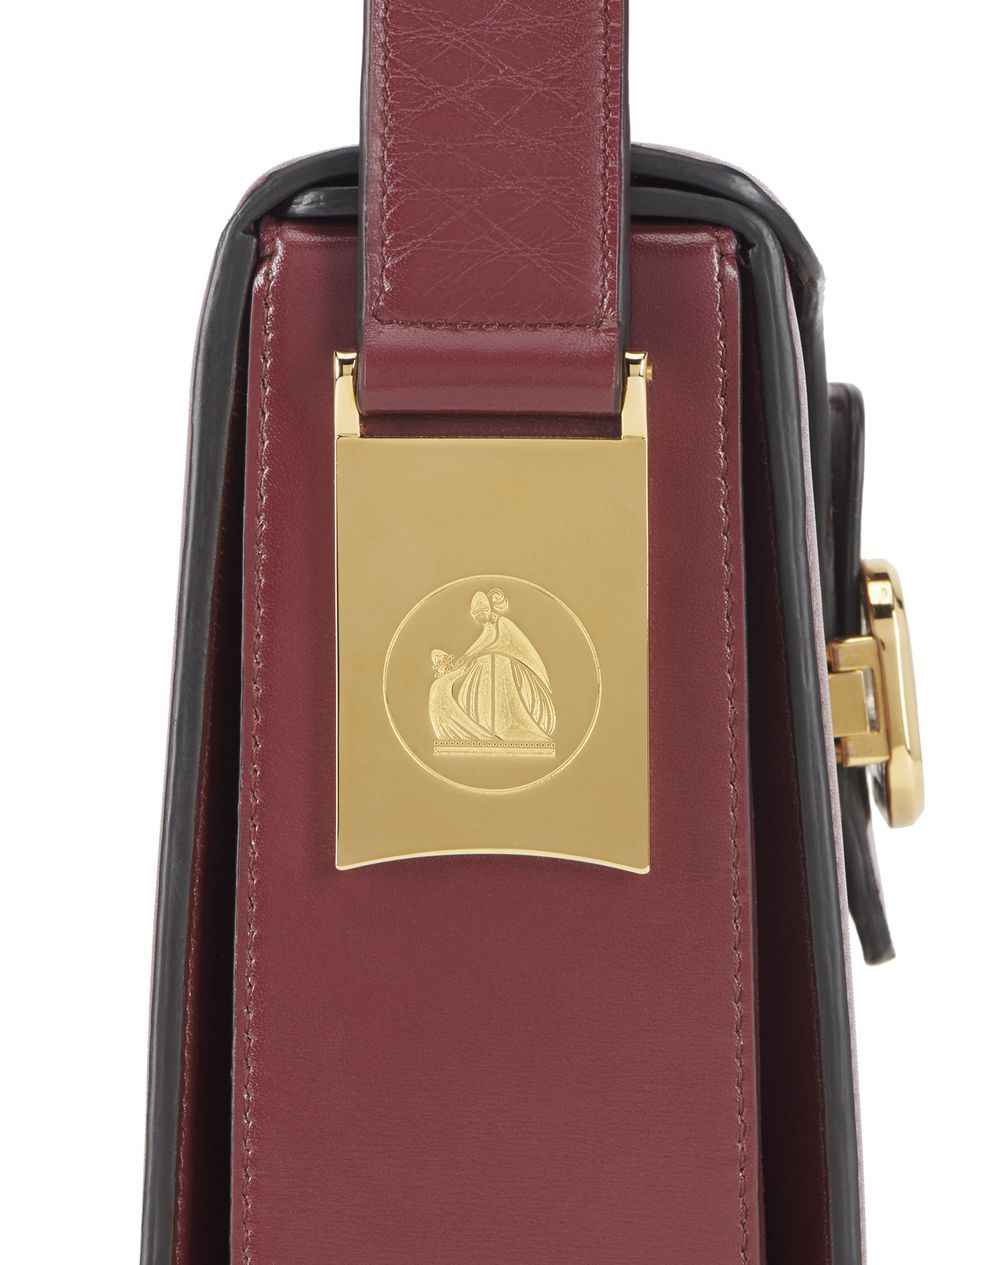 BURGUNDY PENCIL CAMERA BAG - Lanvin